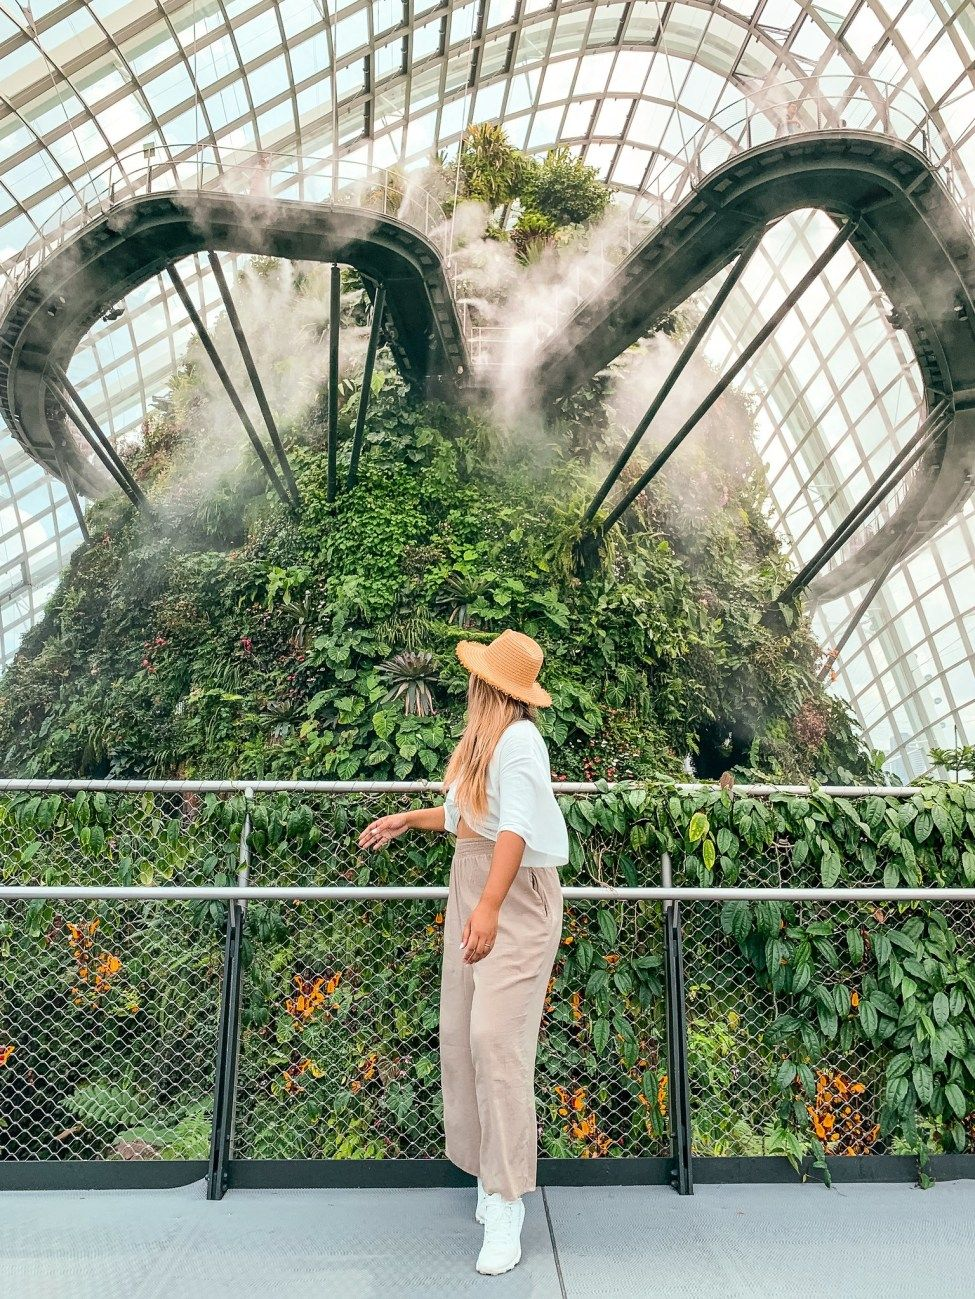 79a3525e67921d6987a4980b68979493 - Guide To Gardens By The Bay